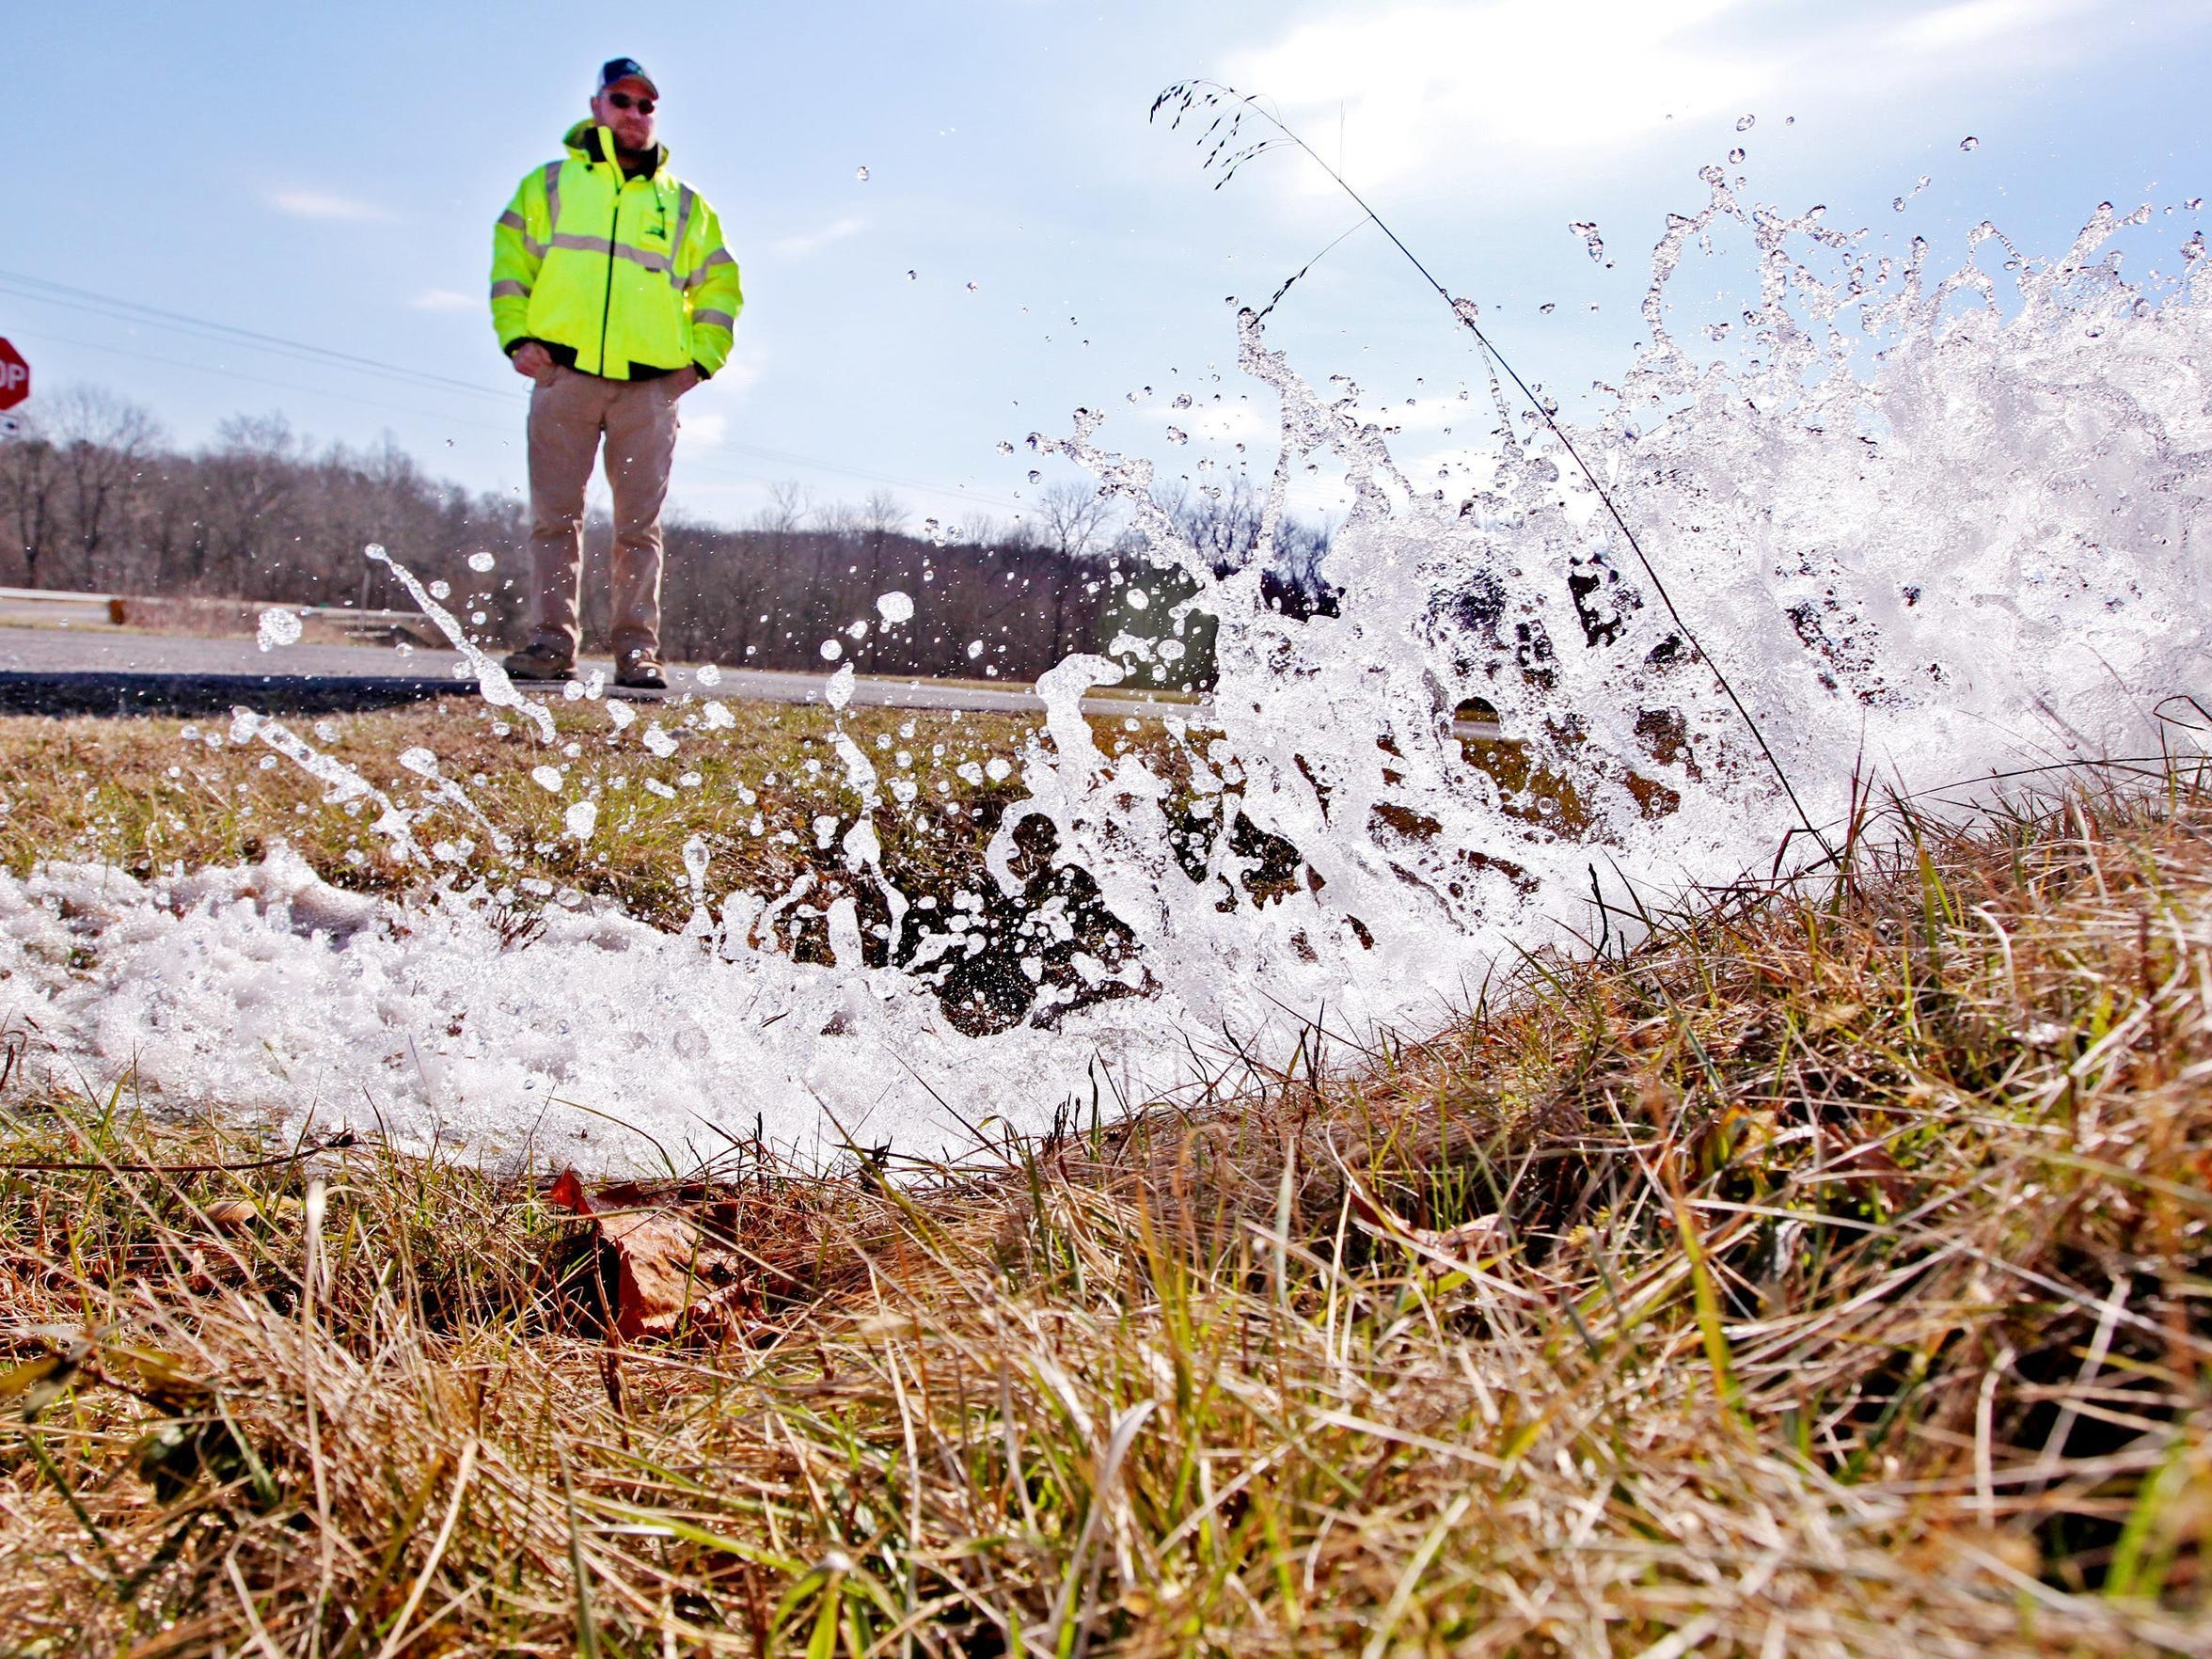 Chad Hammer, Collection and Distribution Supervisor for the Augusta County Service Authority, watches as water gushes out of a waterline that was scheduled for a routine chlorine level check on Thursday, March 3, 2016 just east of Verona. The hydrant marks the end of a waterline that reaches a couple miles outside of Verona on Laurel Hill Road.